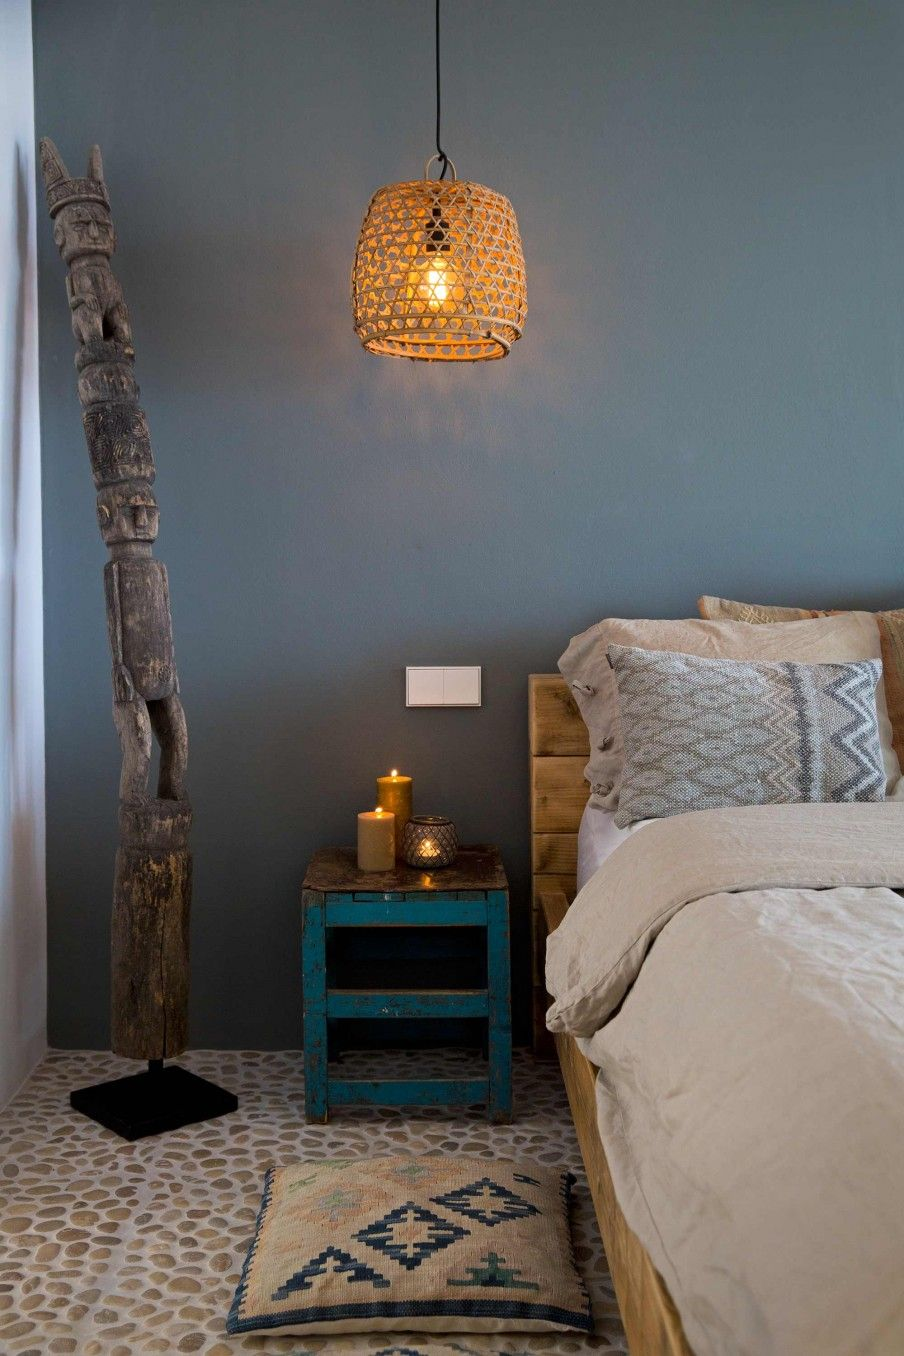 Blauwe muur in slaapkamer Ibiza | Bedroom with blue walls in Ibiza ...